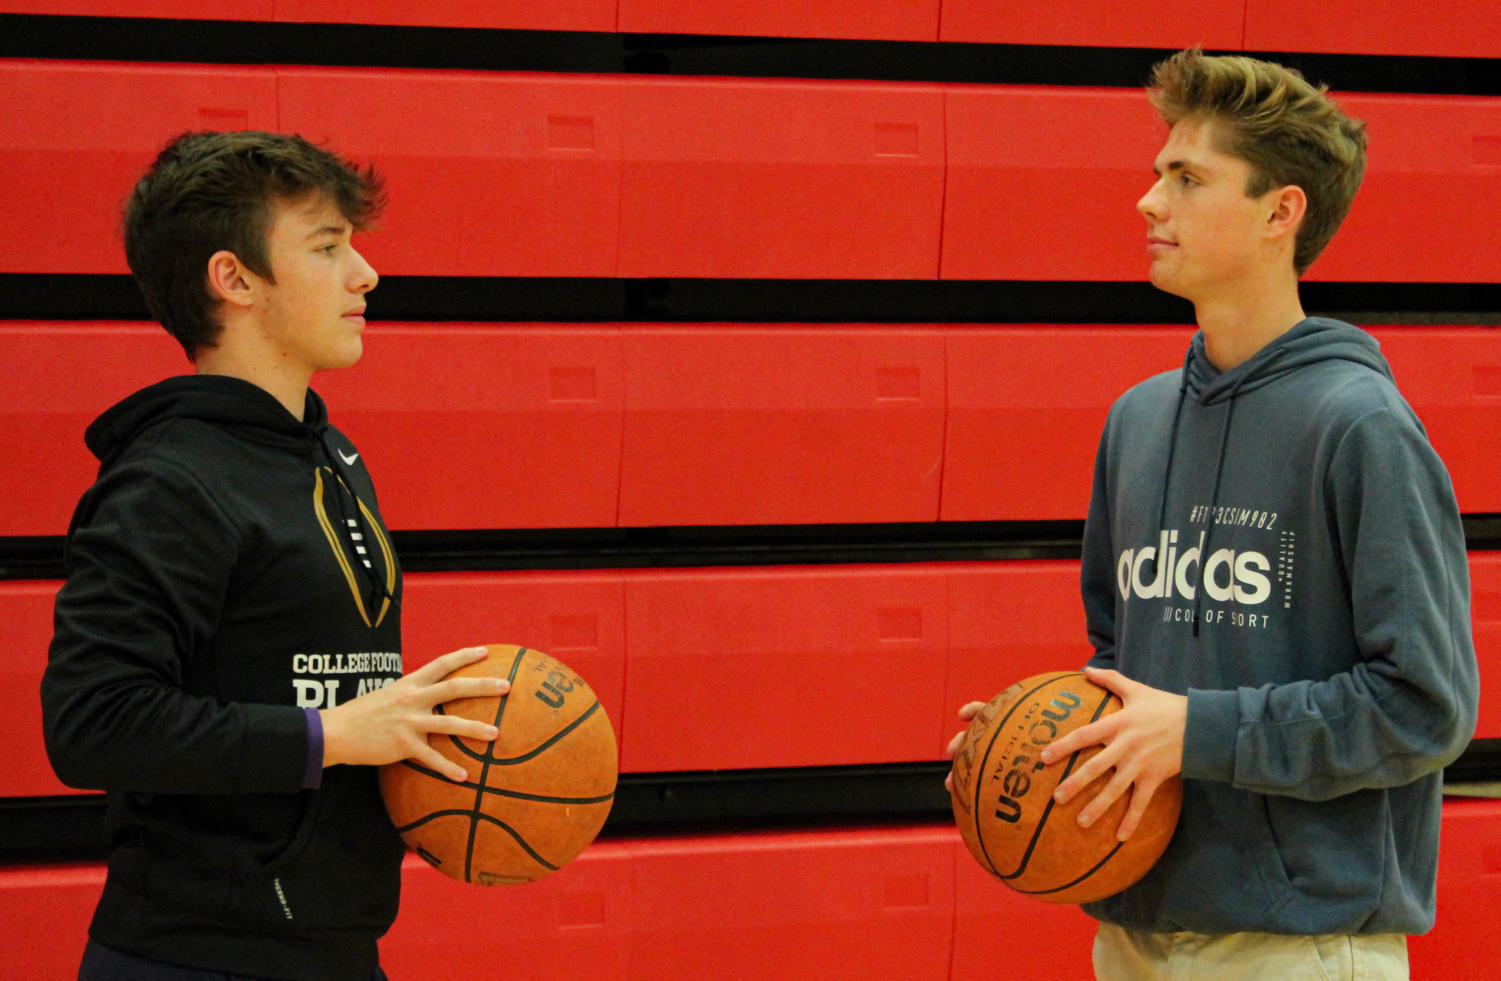 Mitchell Eckardt and Chuck Schraudenbach have worked hard to plan a charity basketball tournament and are ready to see their hard work pay off.